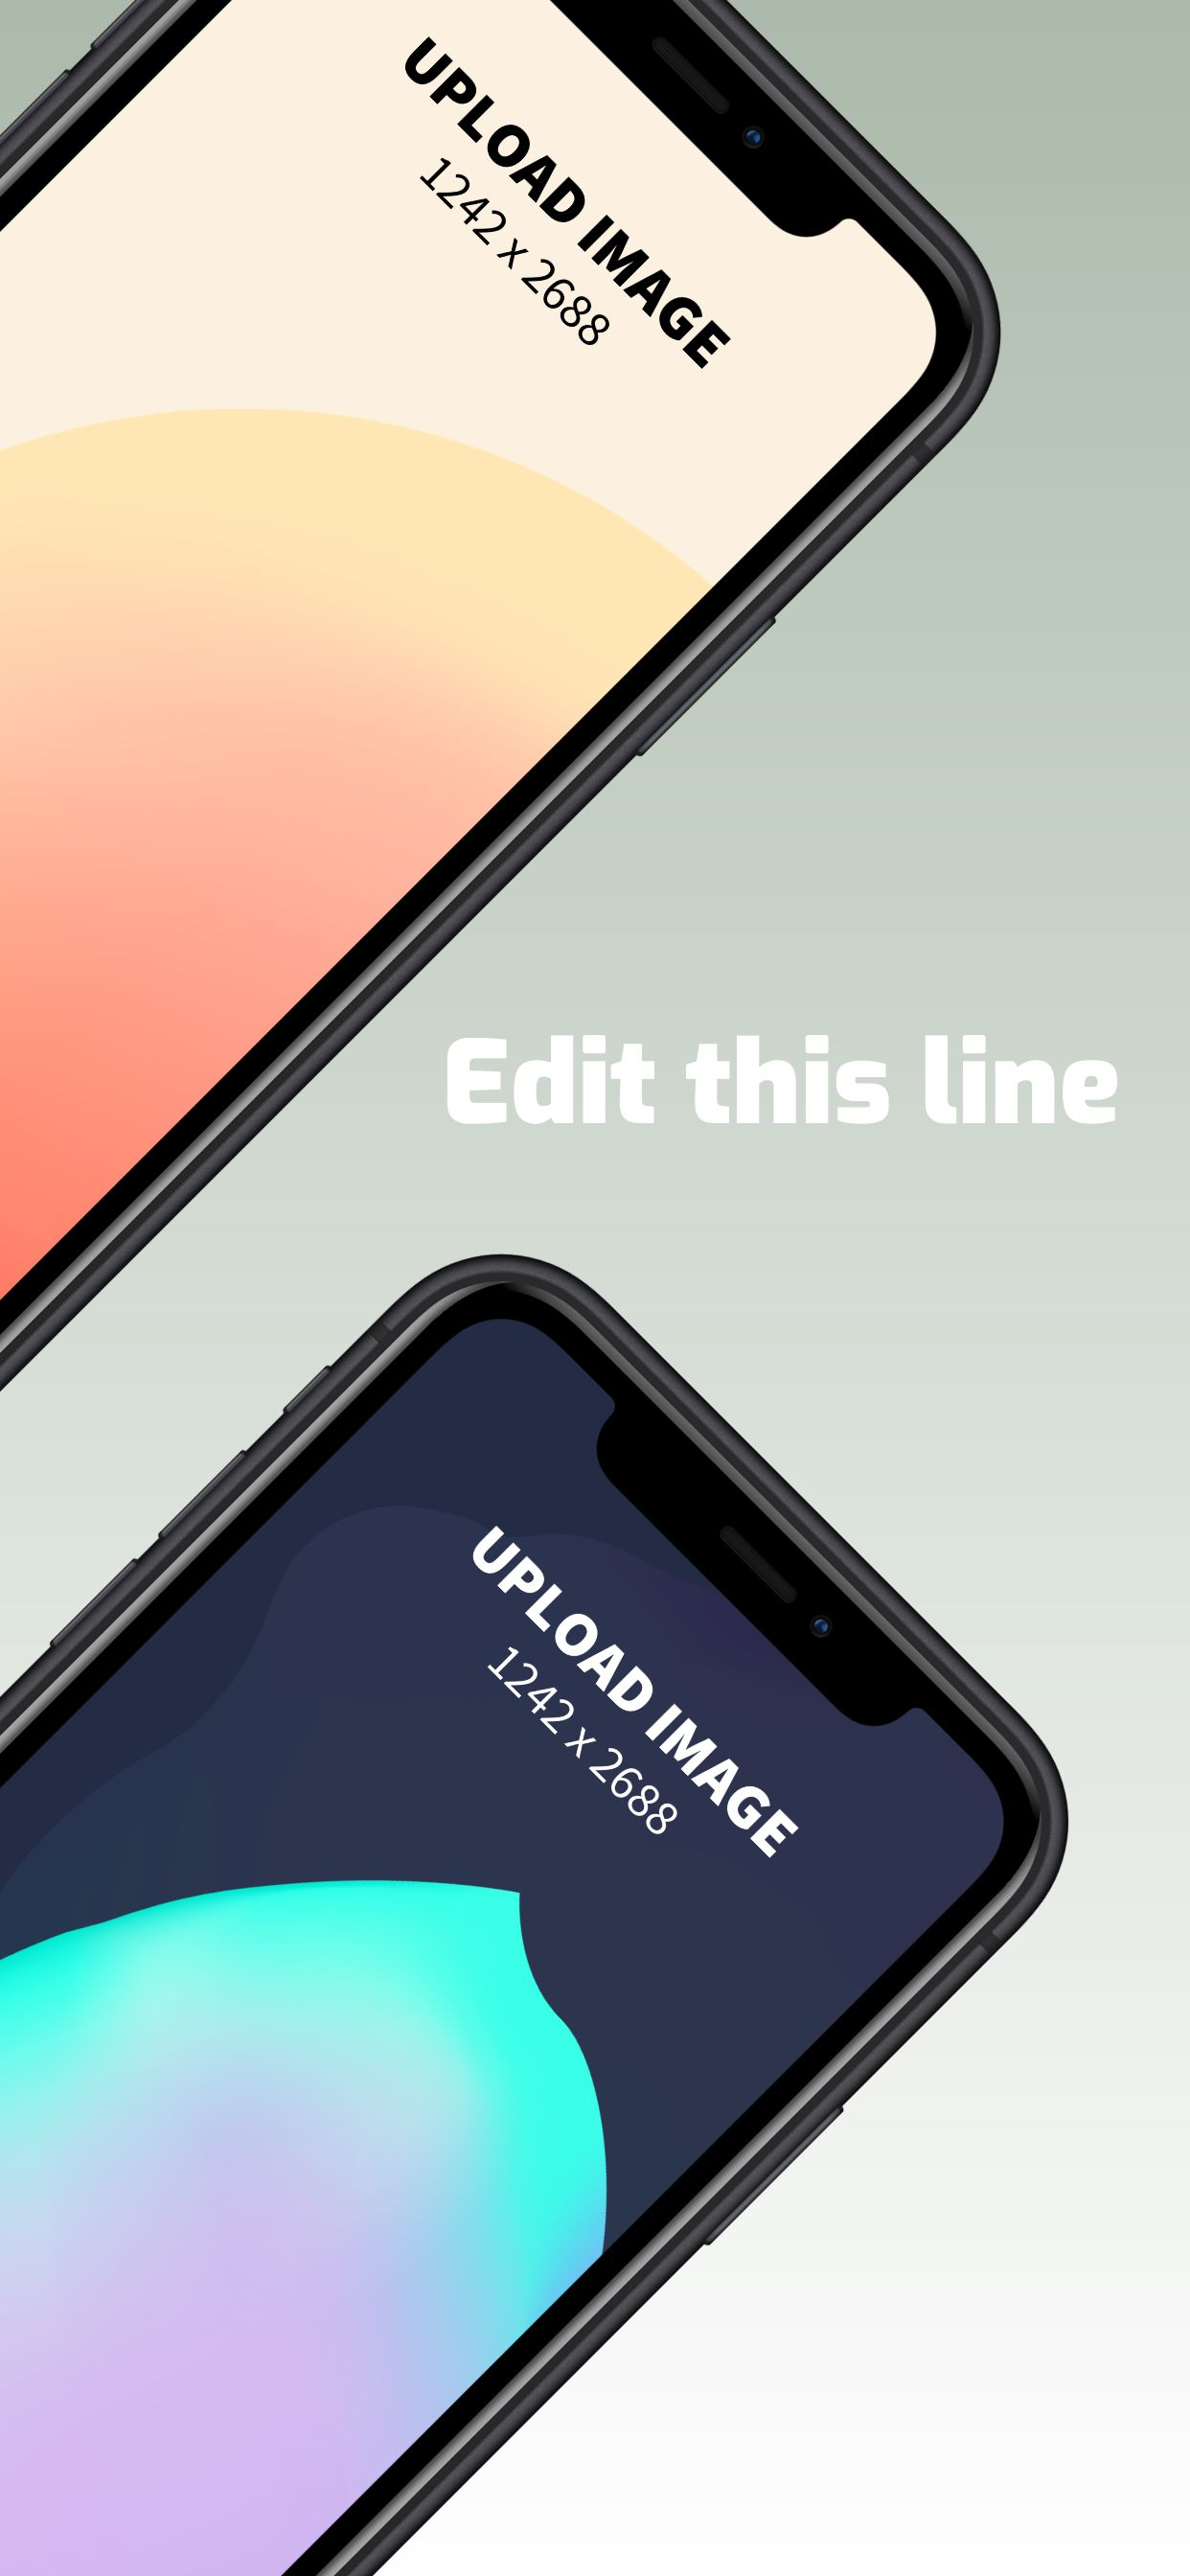 iPhone XS Max Screenshot 13 template. Quickly edit fonts, text, colors, and more for free.